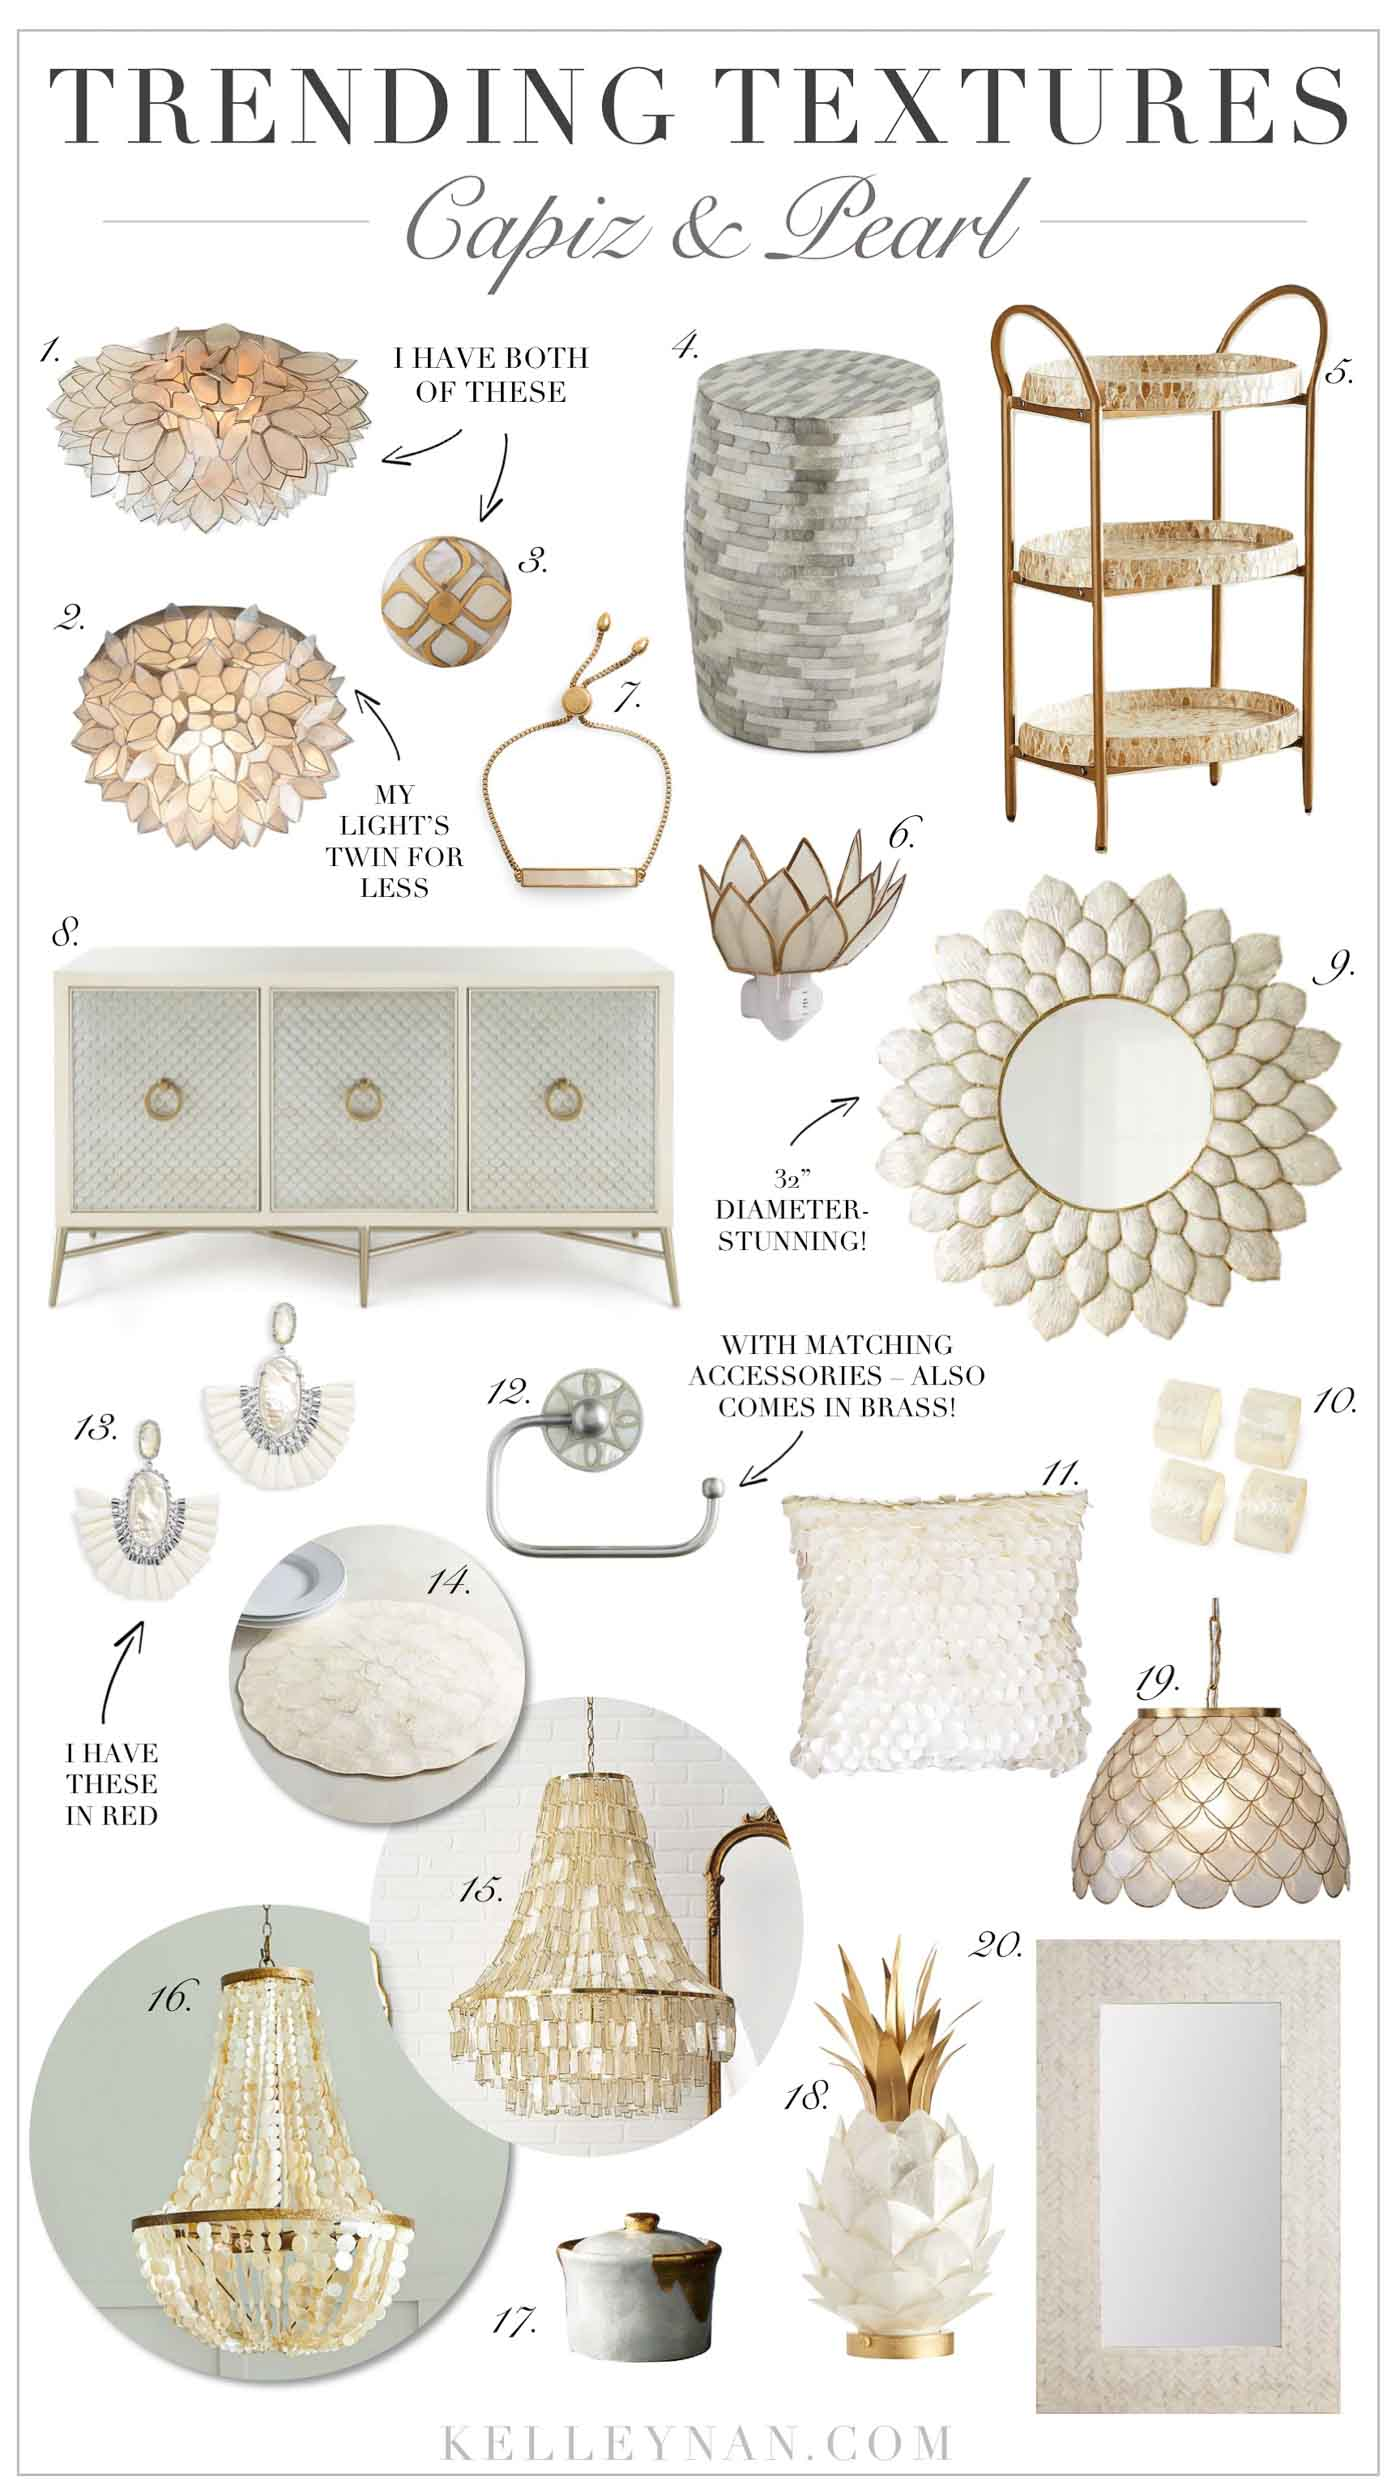 Capiz and pearl home decor, from lighting to furniture and accessories